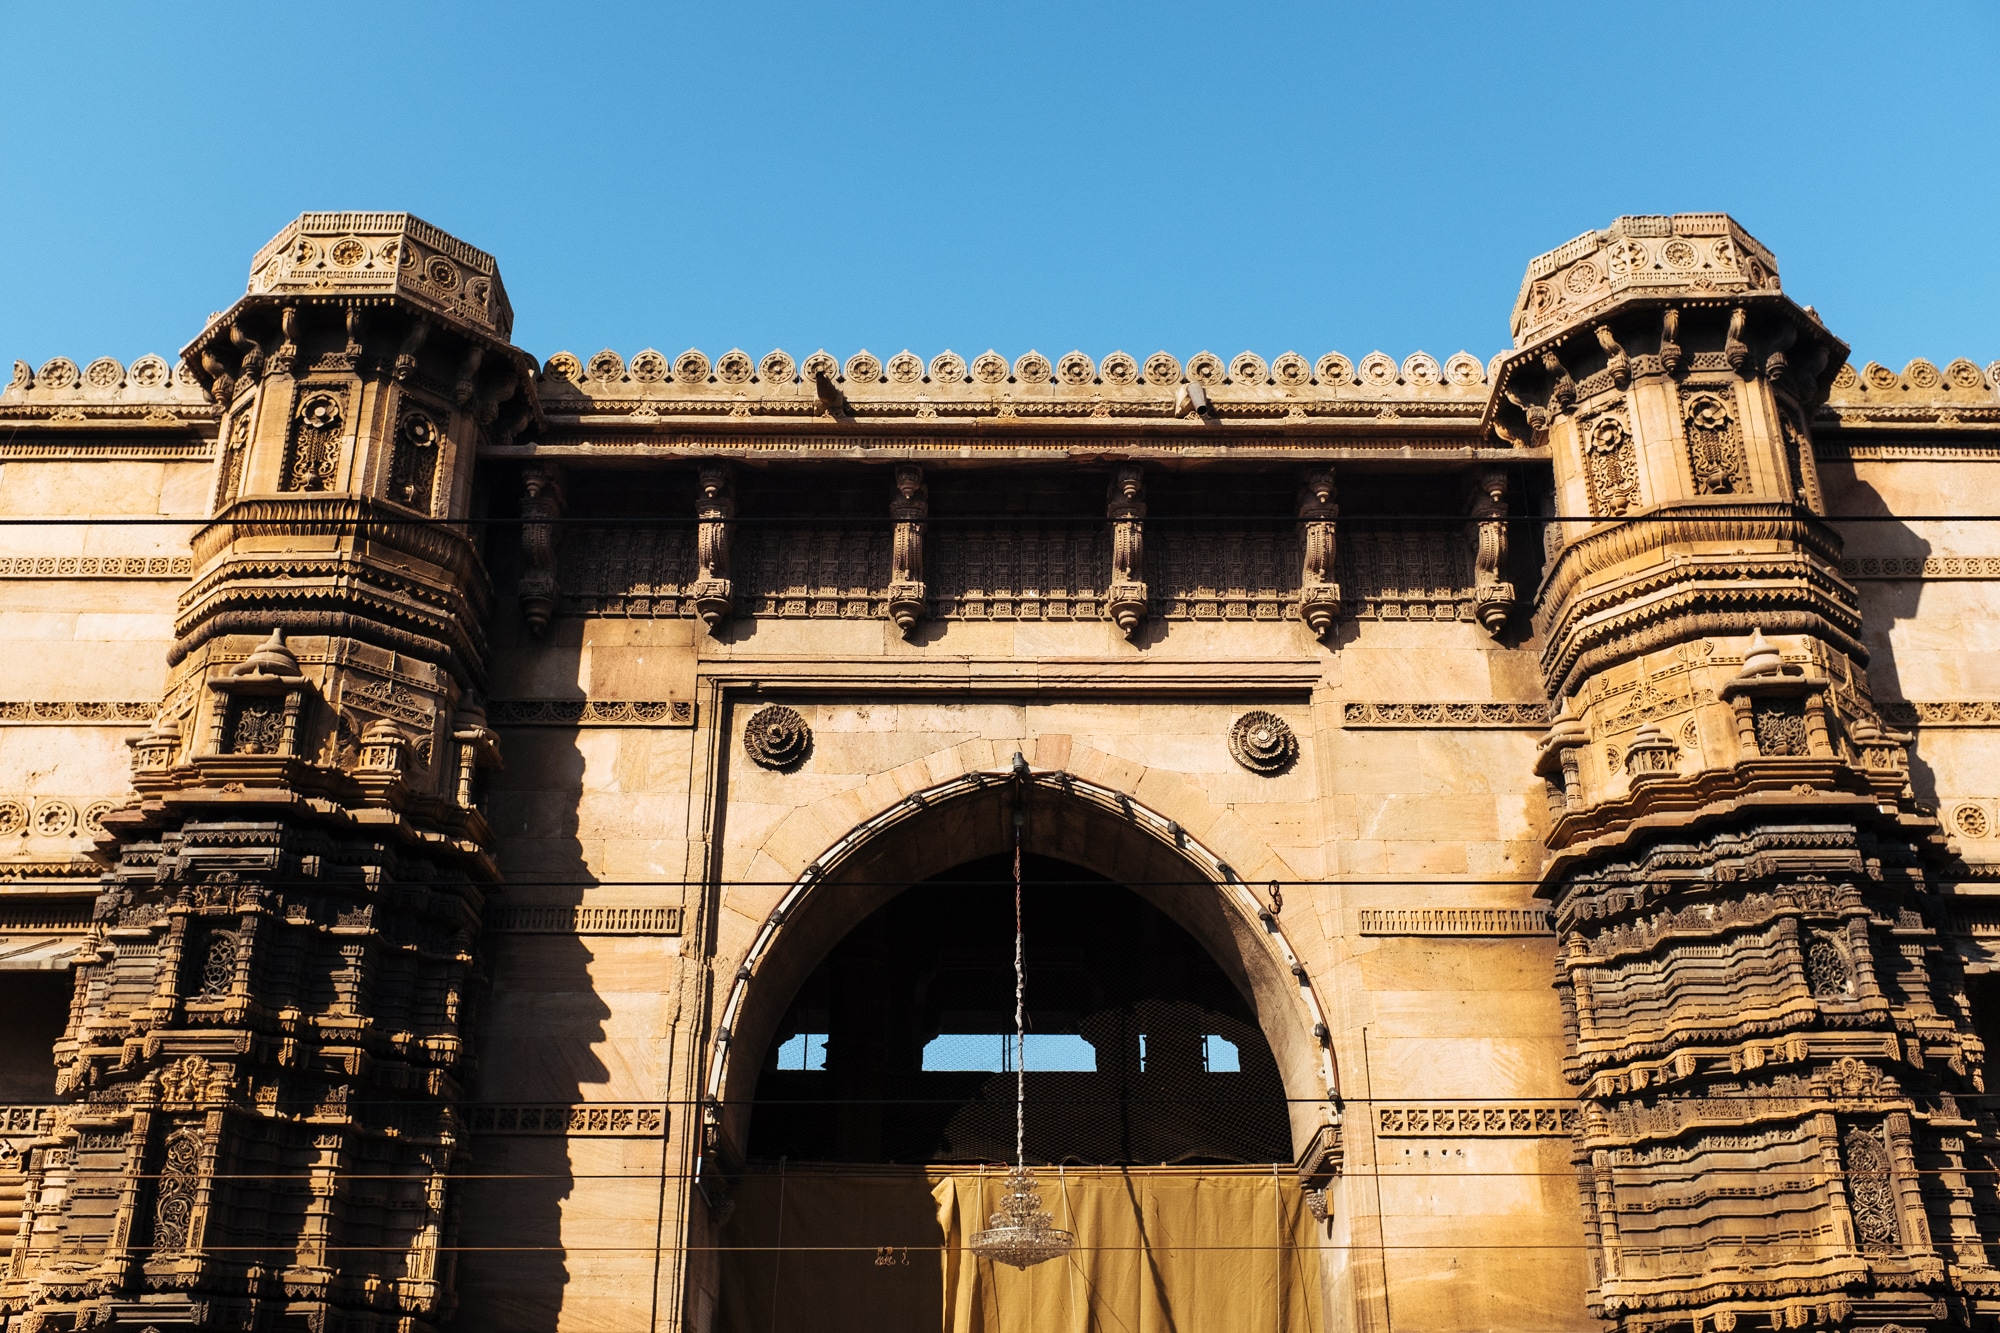 The main gate and base of minarets of Rani Rupmati Mosque, Ahmedabad